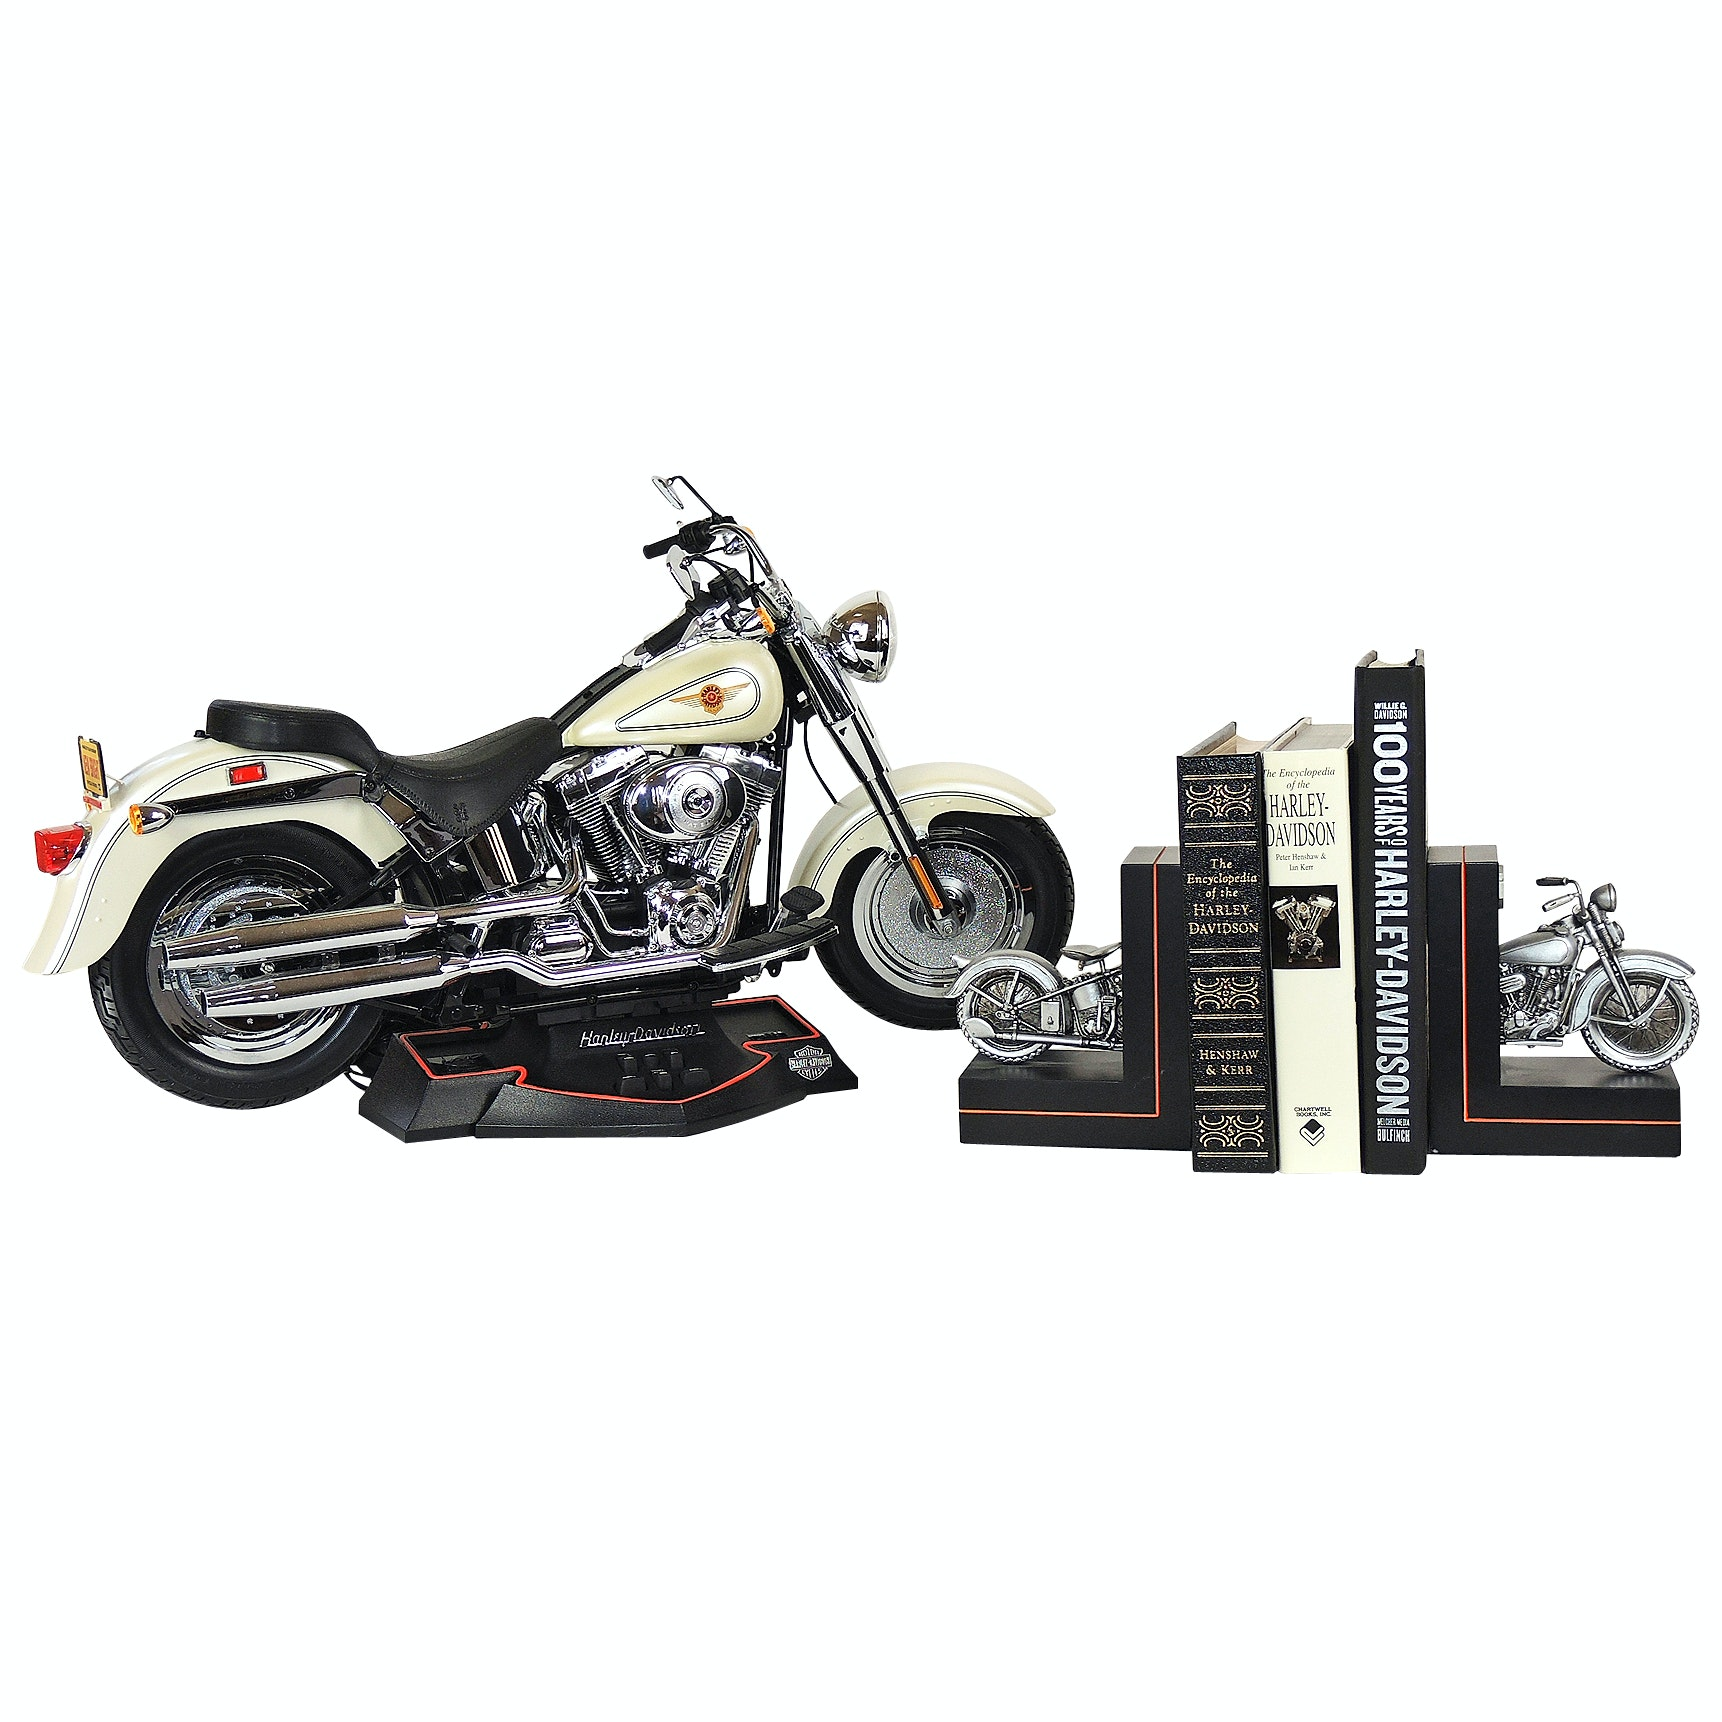 Harley-Davidson Electronic Model Motorcycle and Books with Bookends